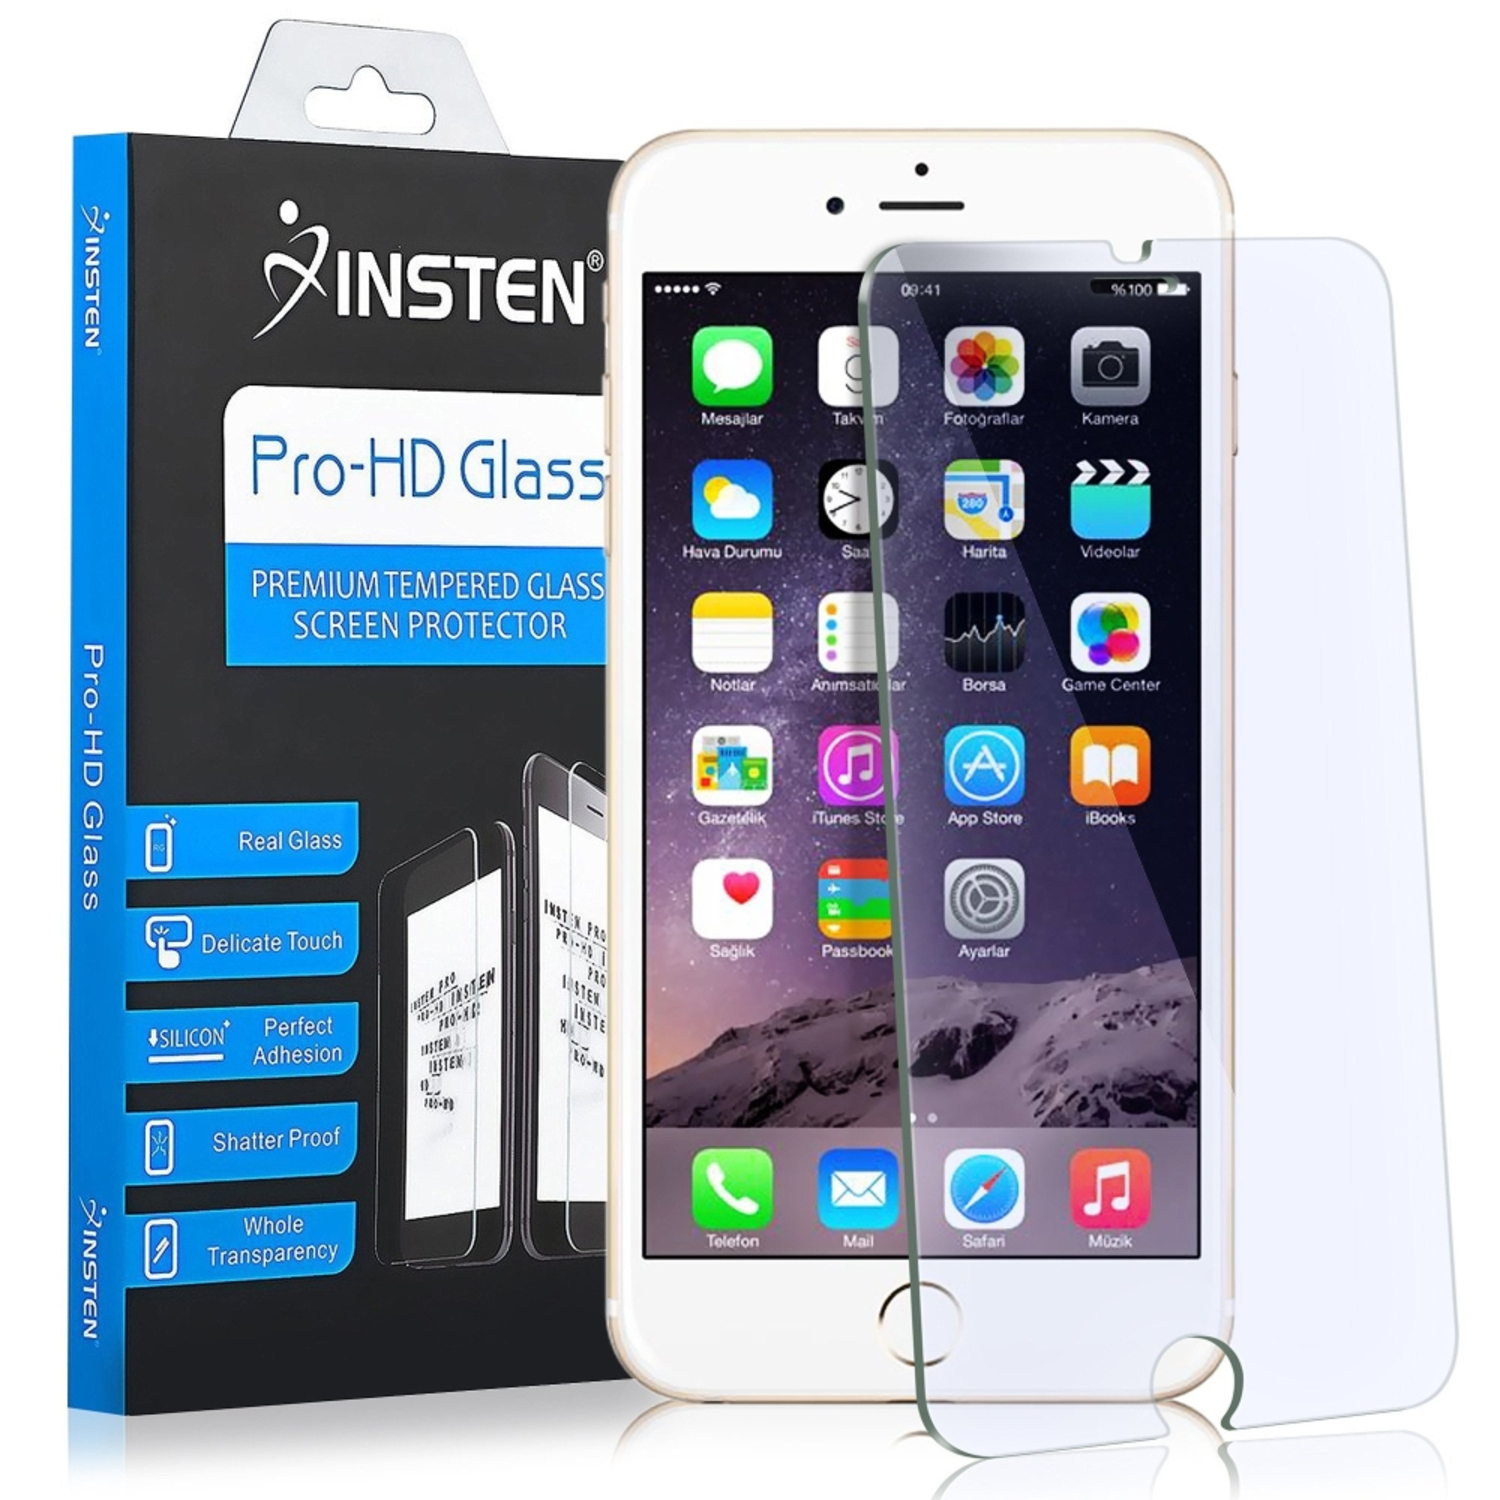 Insten (2-pack) Tempered Glass Screen Protector For Apple iPhone 8 Plus / iPhone 7 Plus 5.5 inch (9H Hardness & Anti-Scratch)